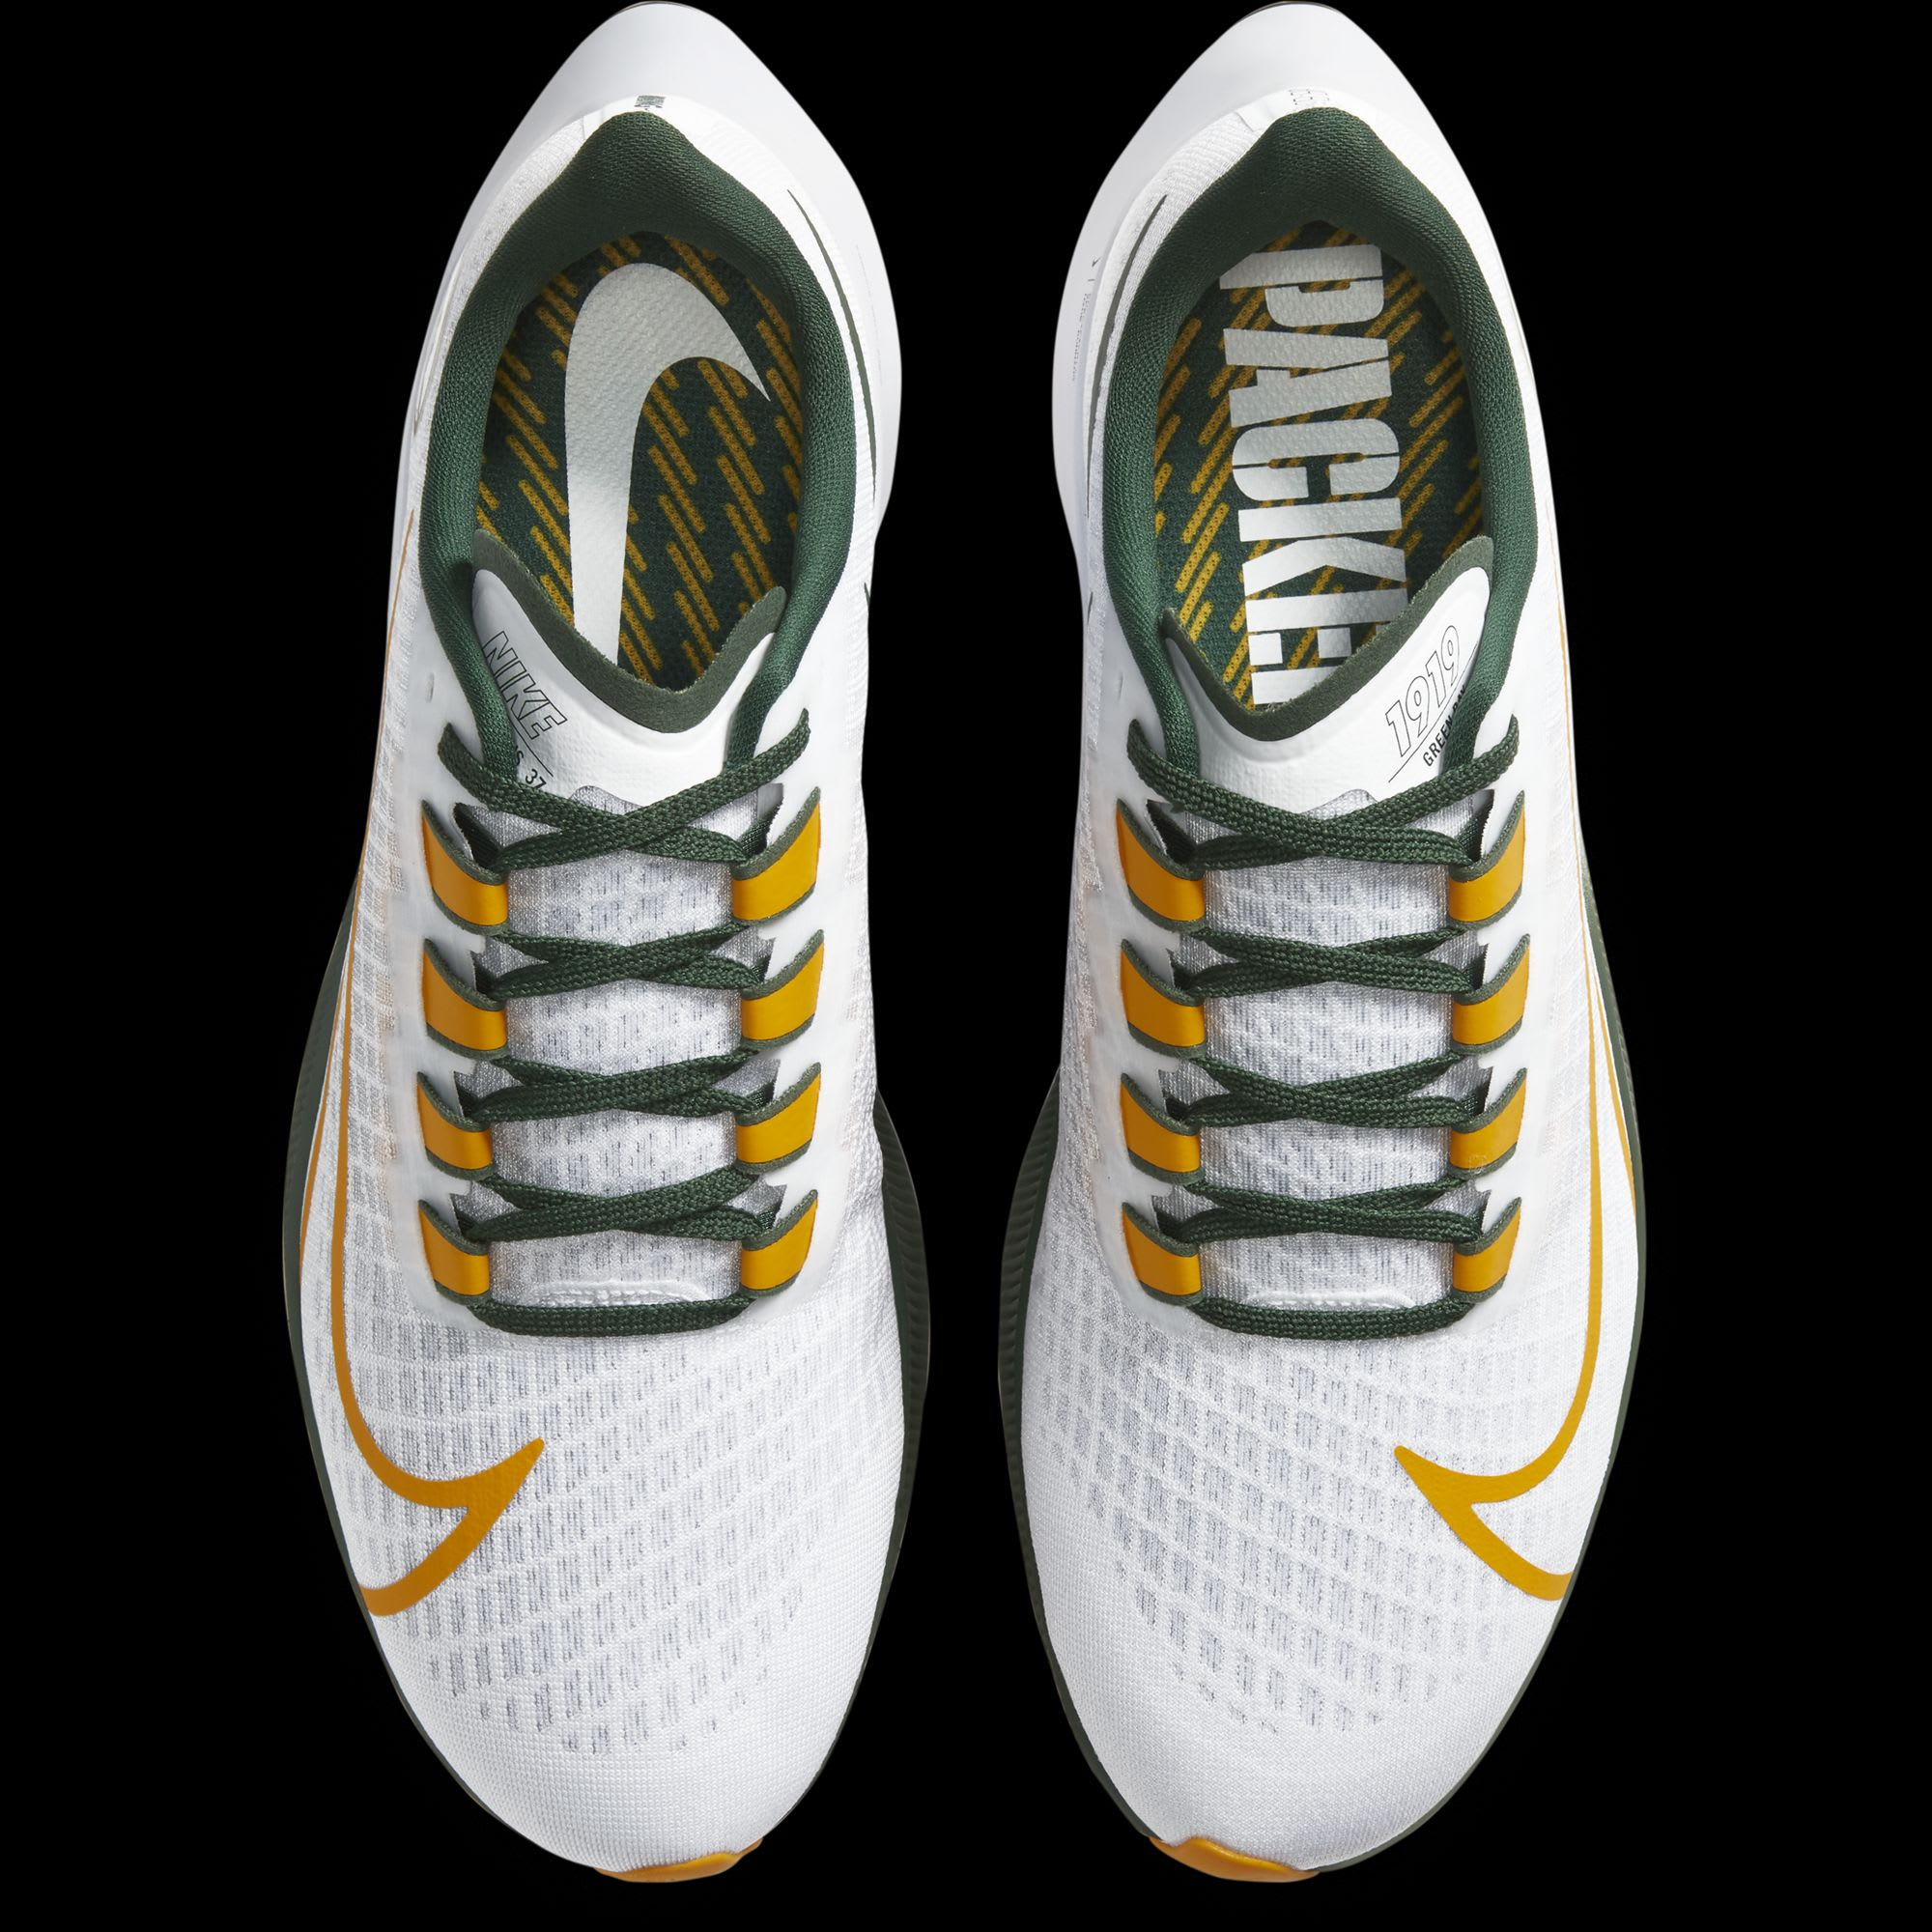 awesome Green Bay Packers Nike shoes